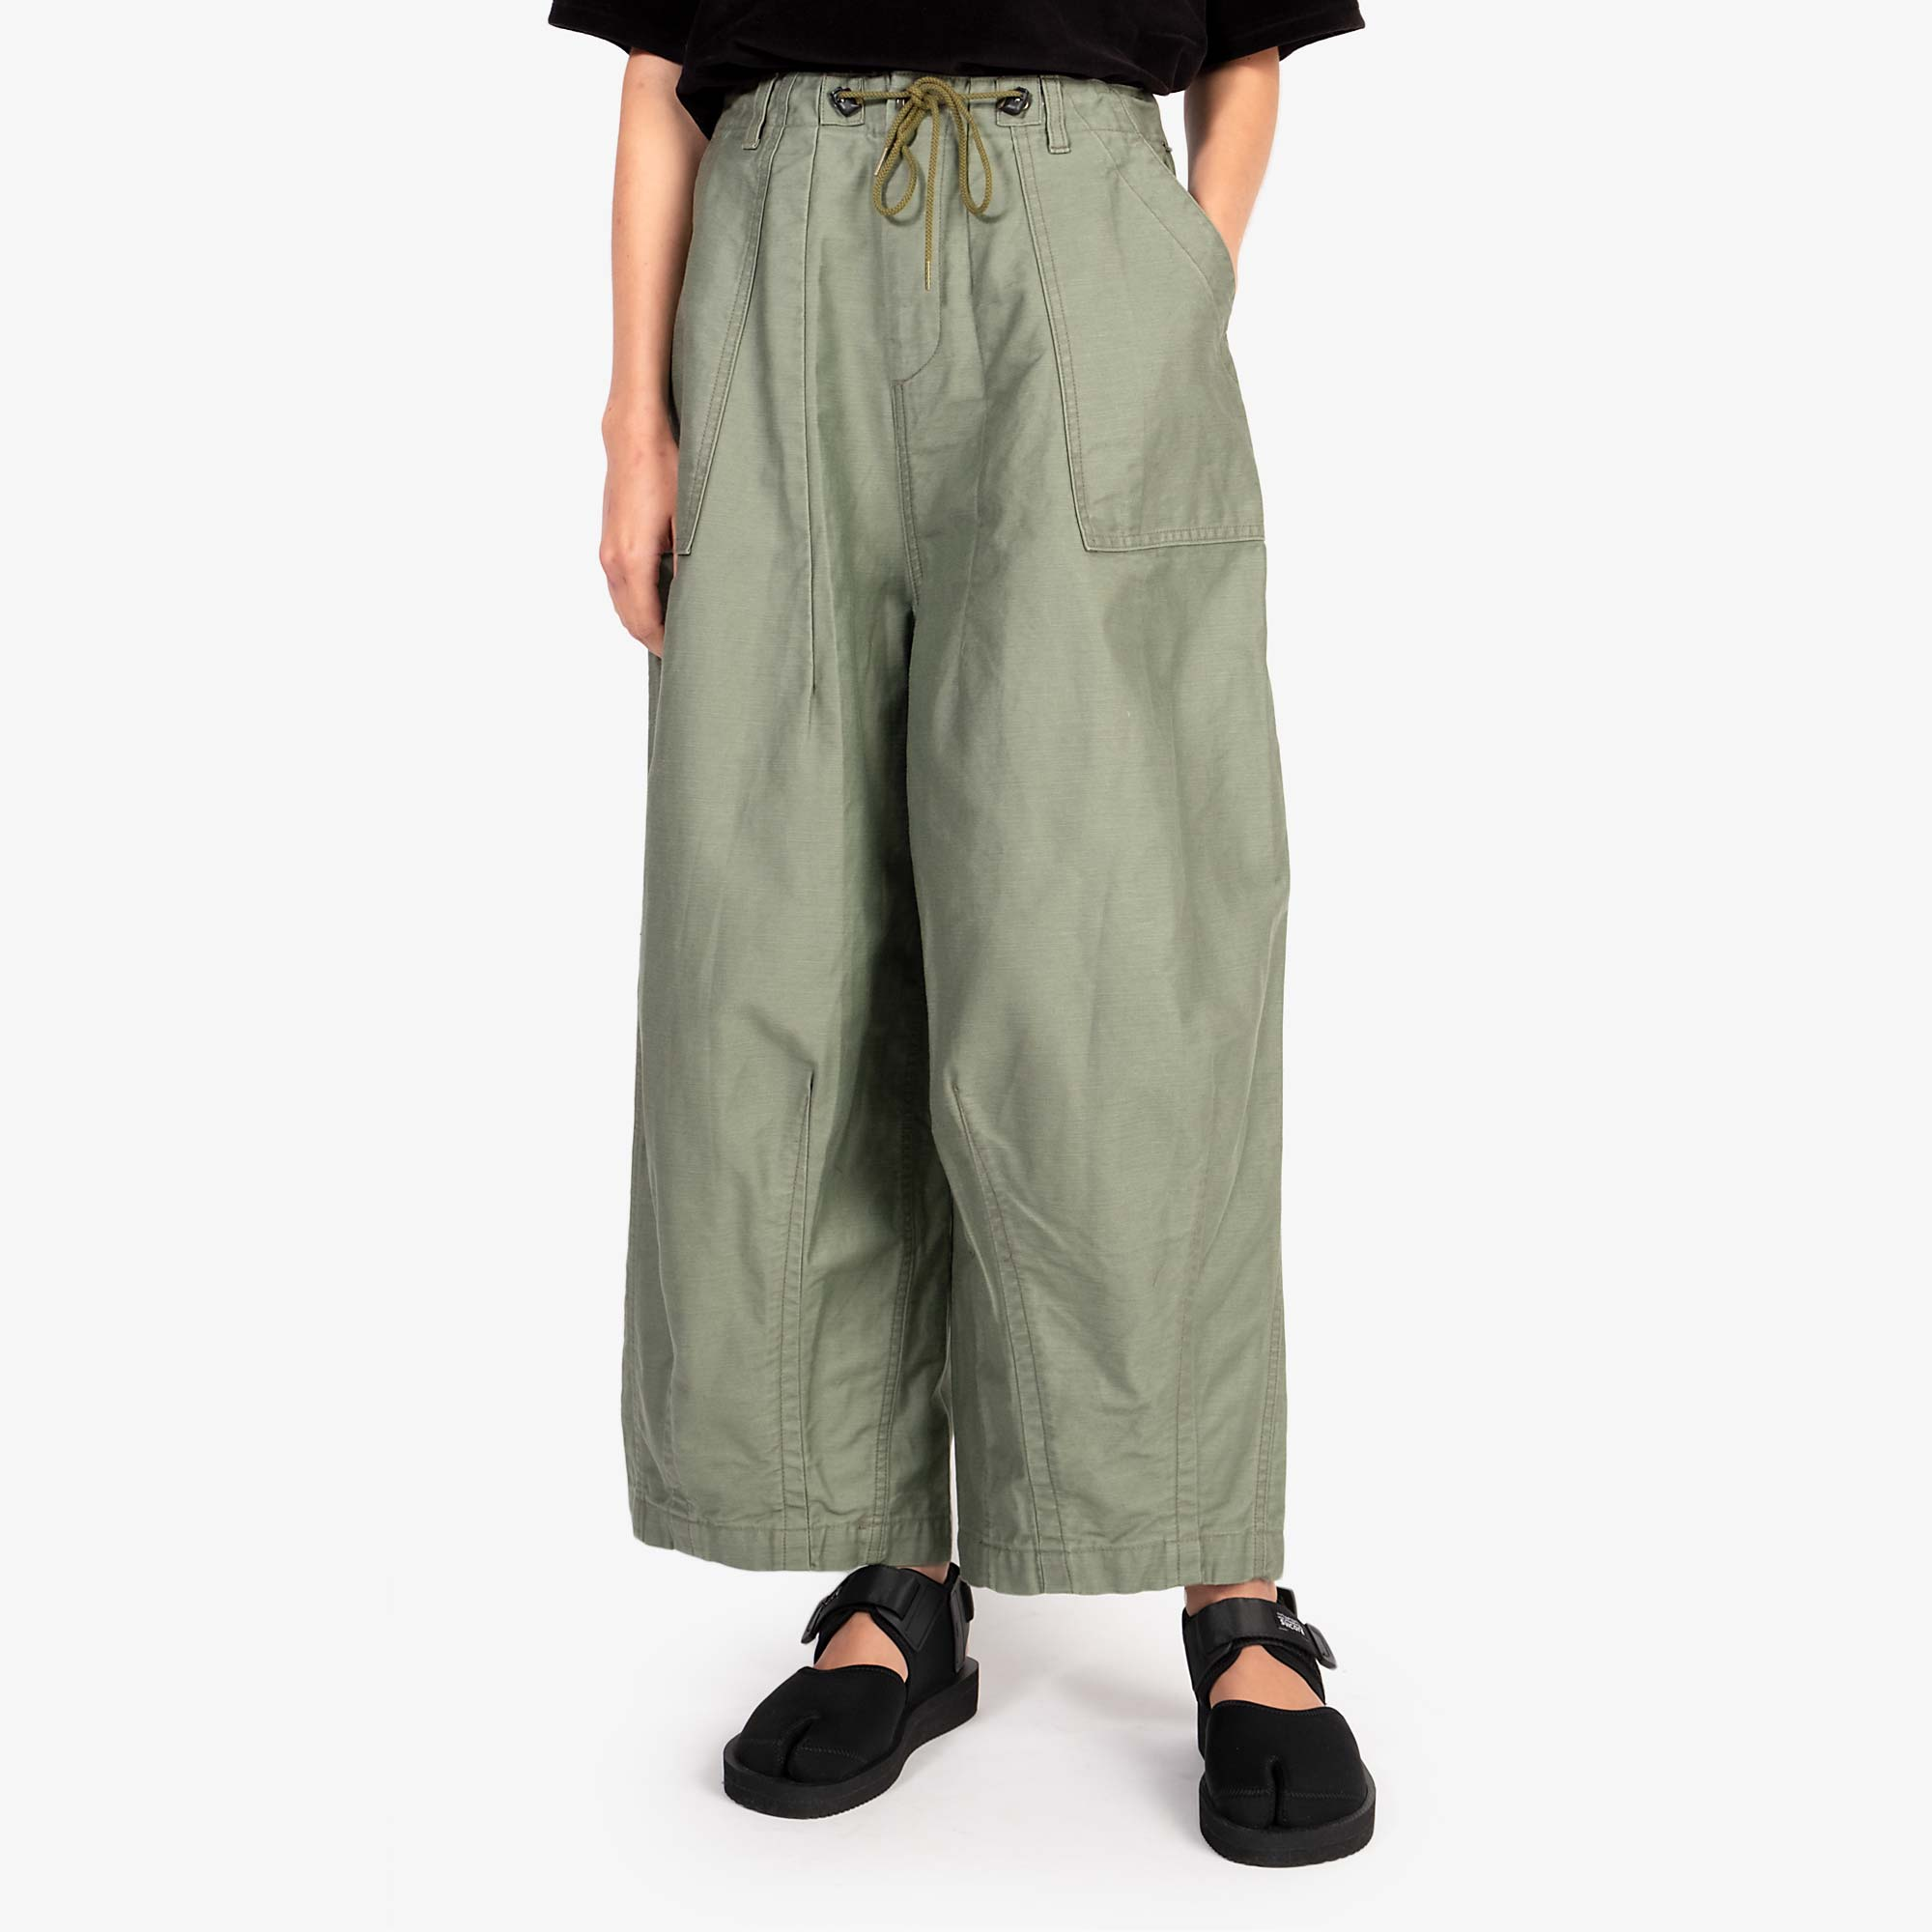 Needles W' H.D. Fatigue Pant - Olive 1